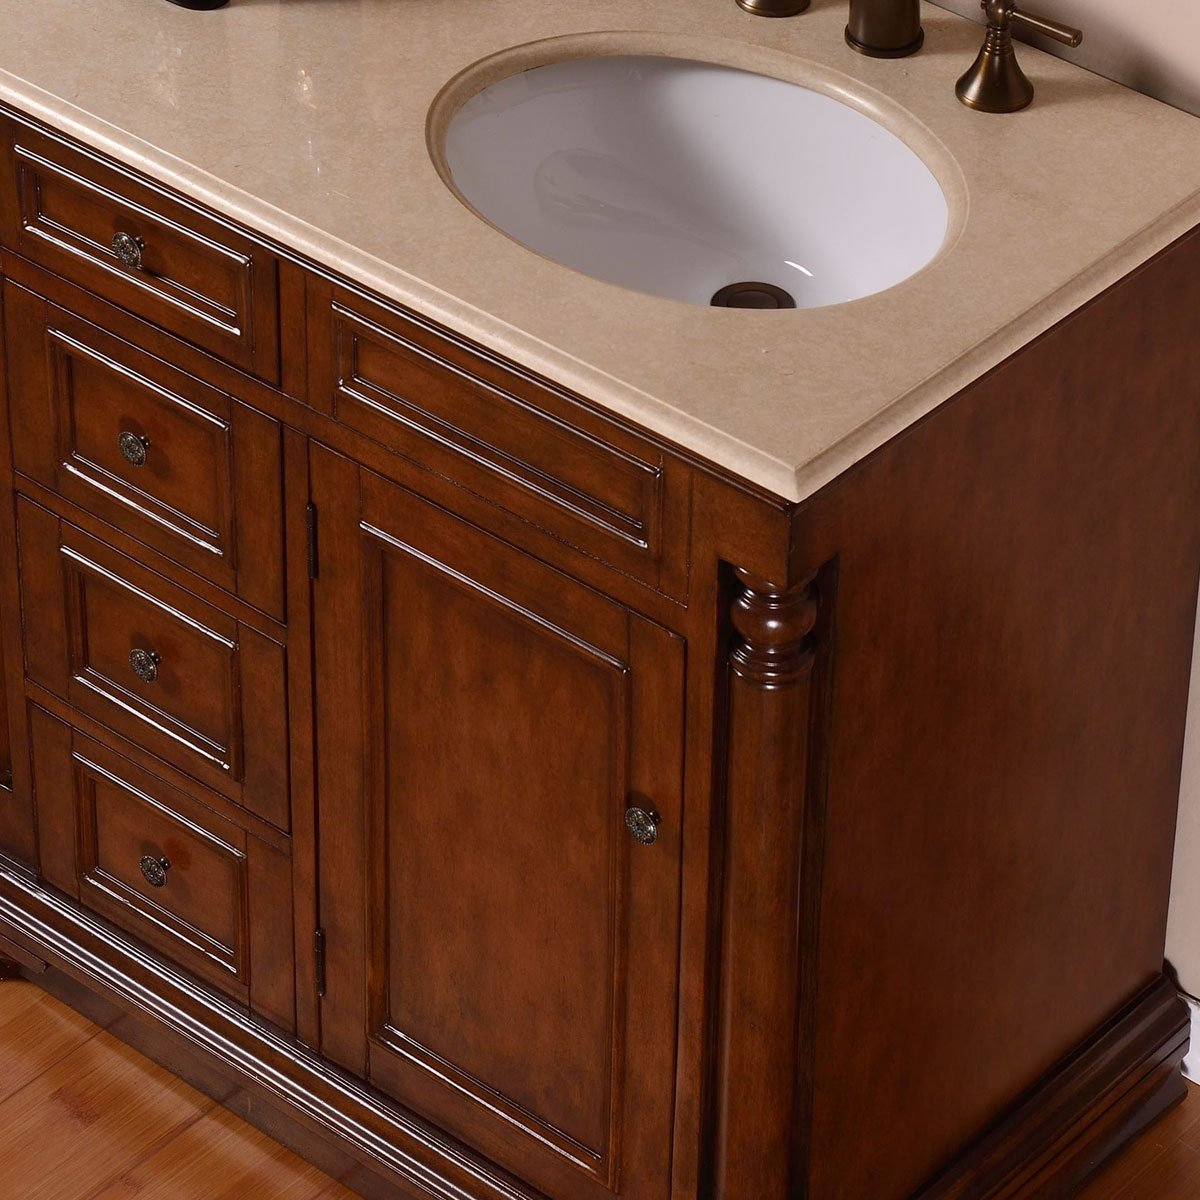 Silkroad Exclusive Single Right Sink Bathroom Vanity with Furniture Cabinet, 36-Inch by Silkroad Exclusive (Image #4)